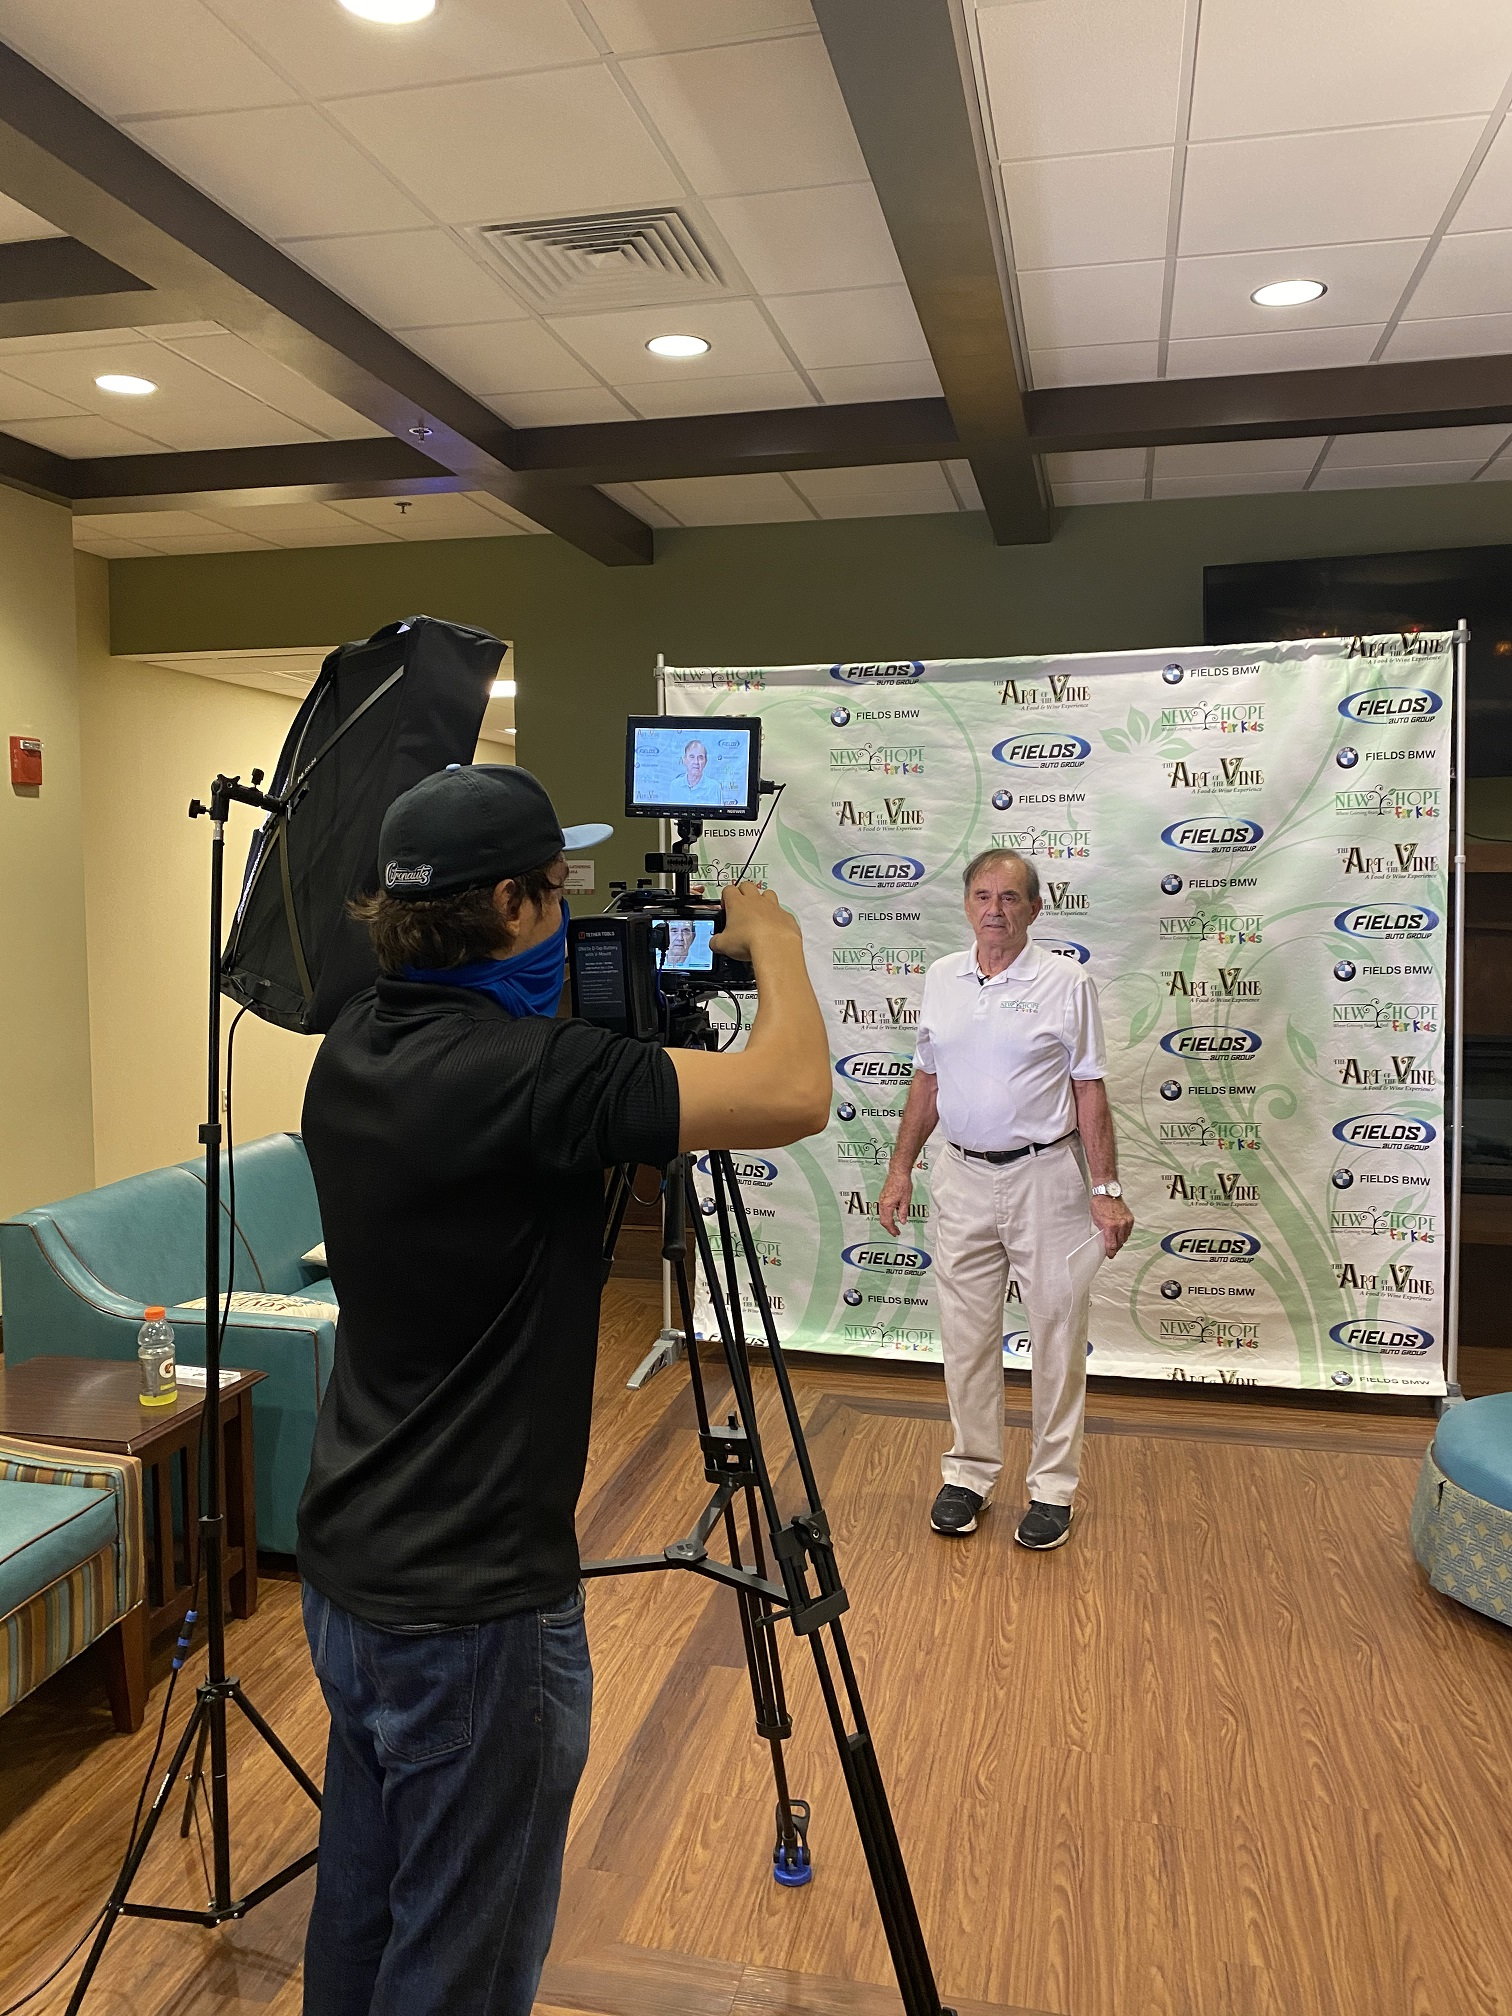 FF Marketing Services helps New Hope For Kids with Video Production for the Art of the Vine Fundraiser